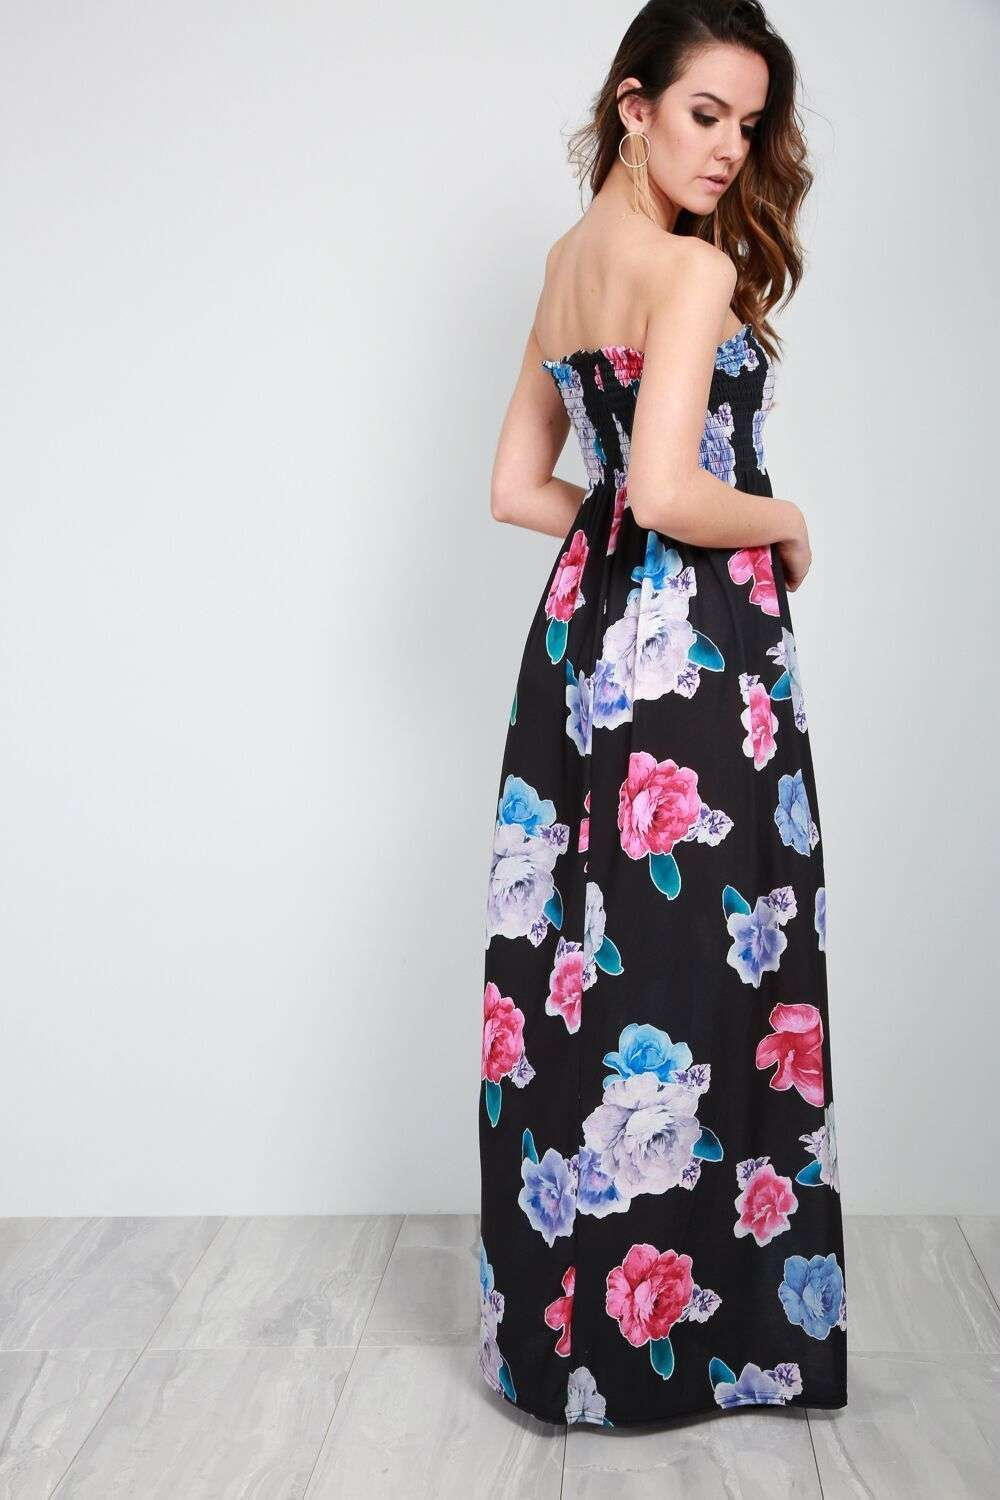 Tammi Sheering Strapless Floral Maxi Dress - bejealous-com